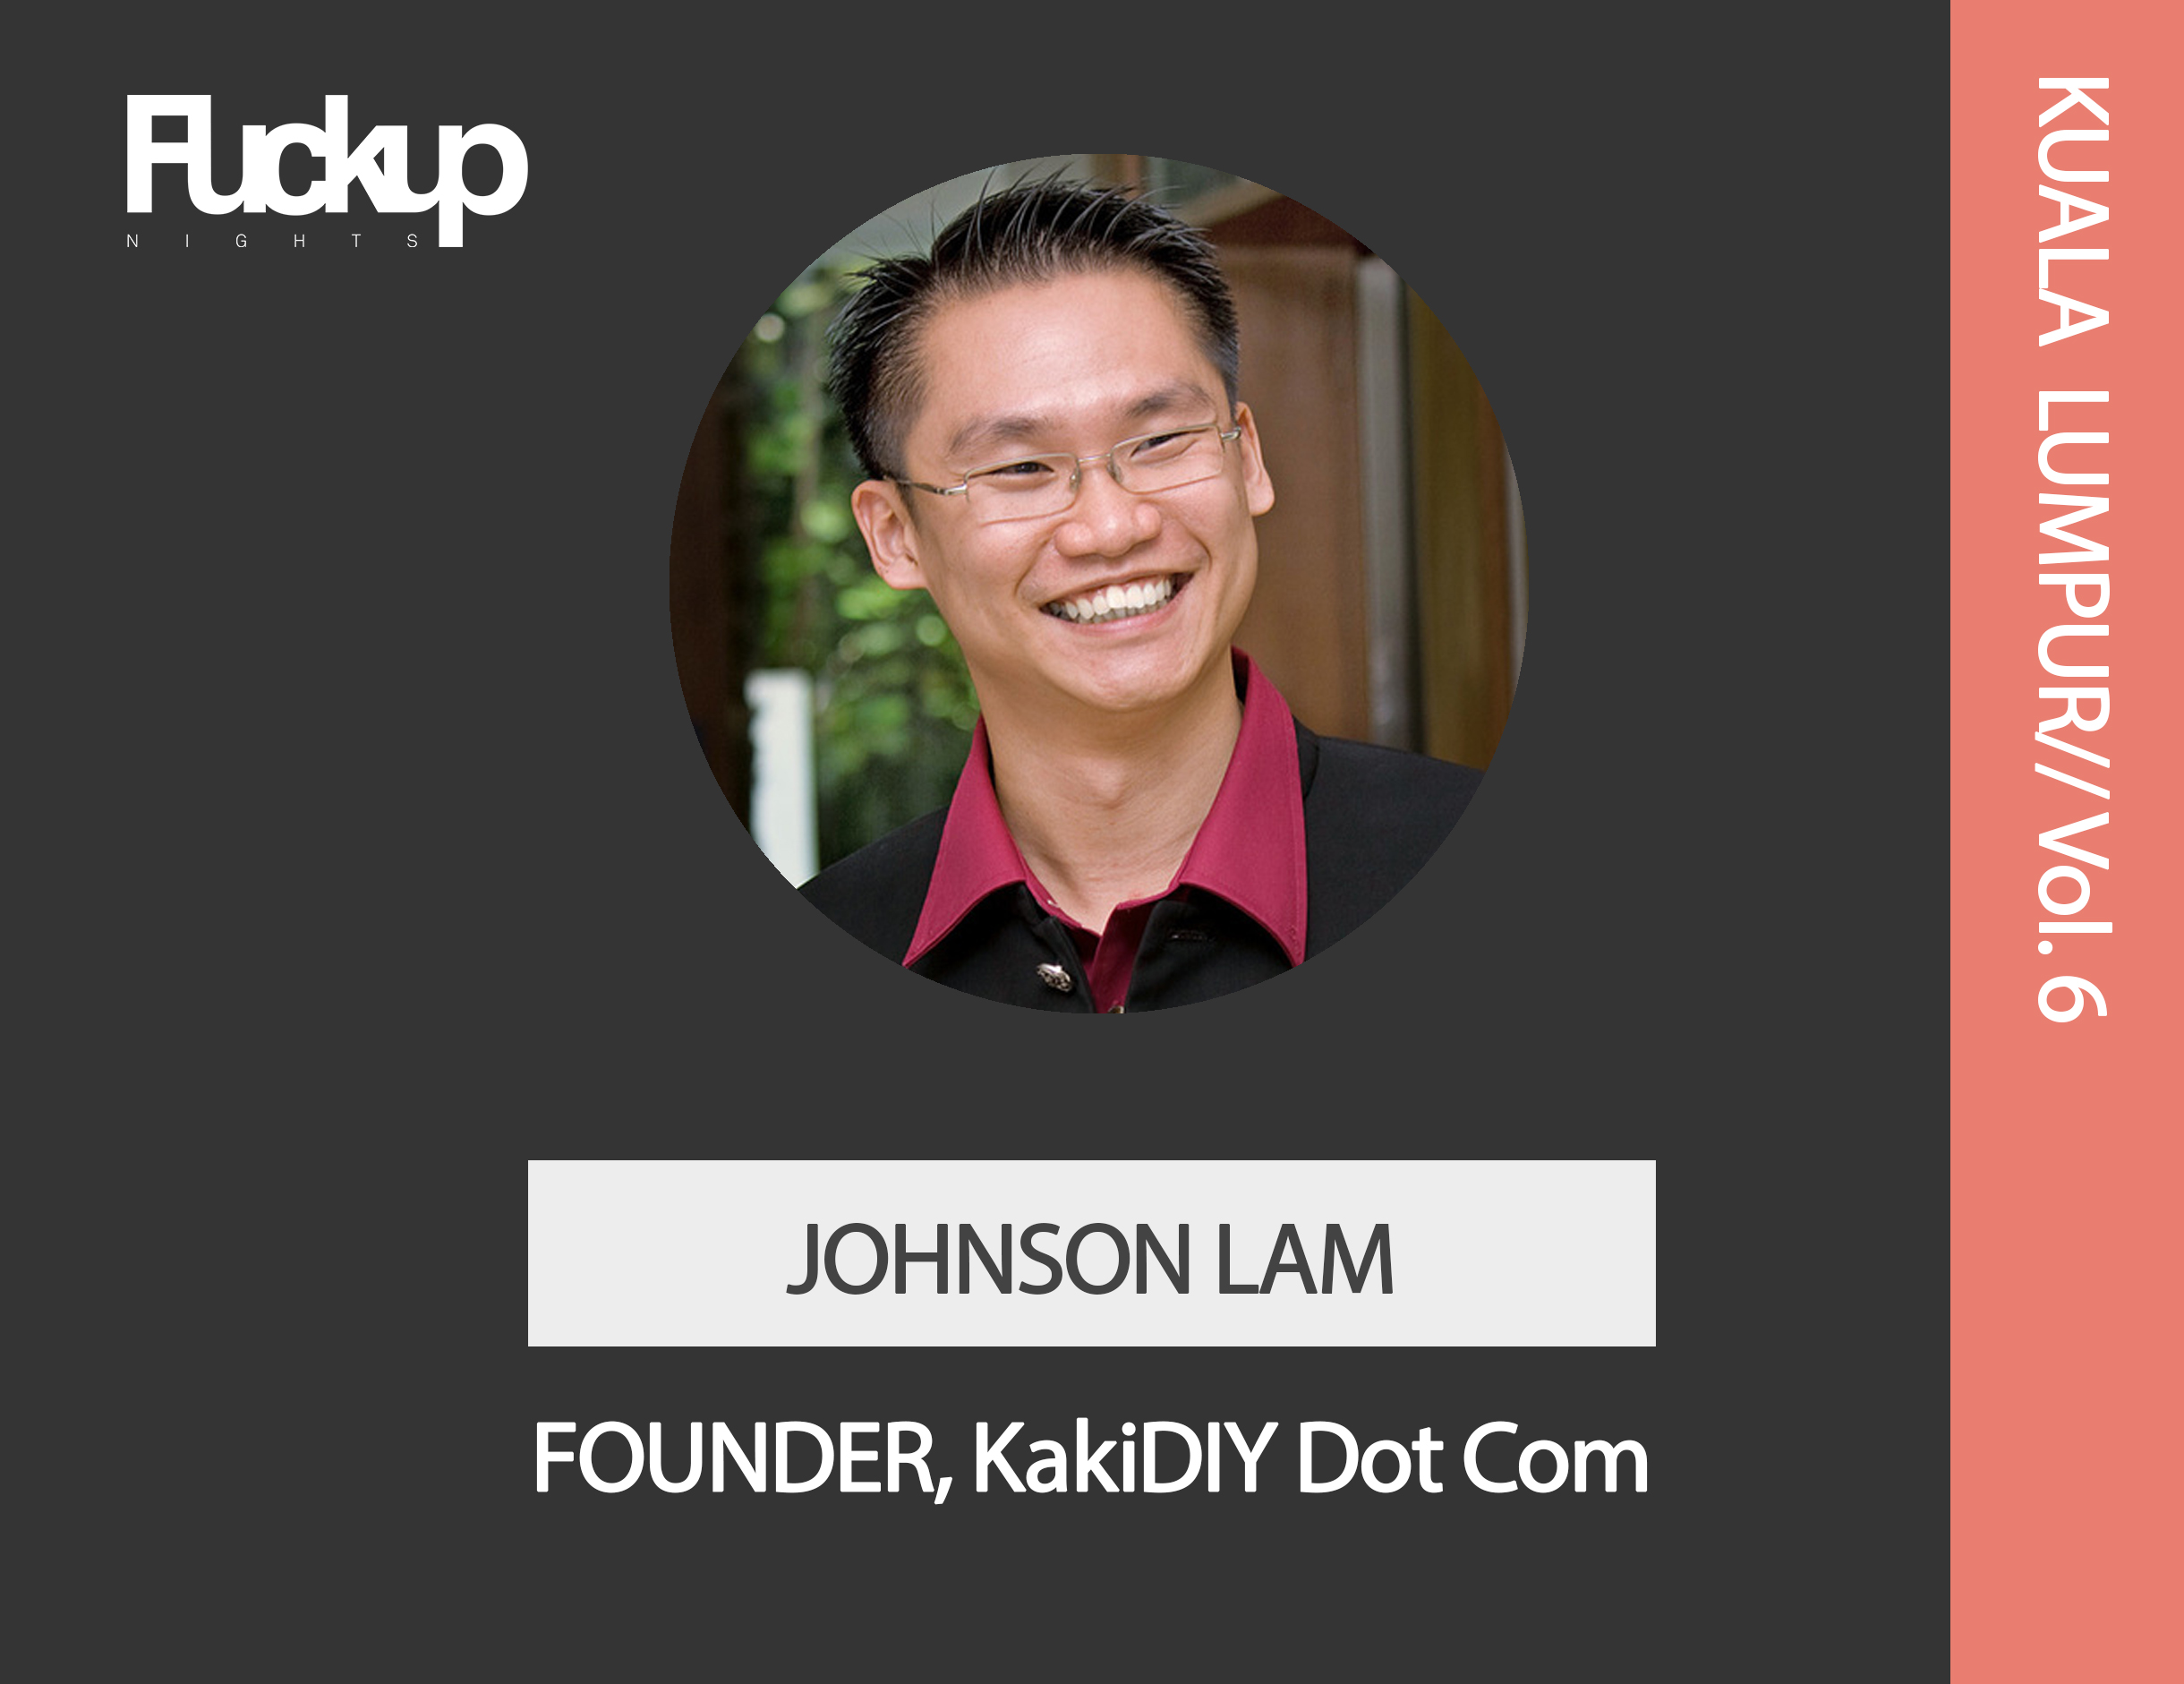 Johnson Lam